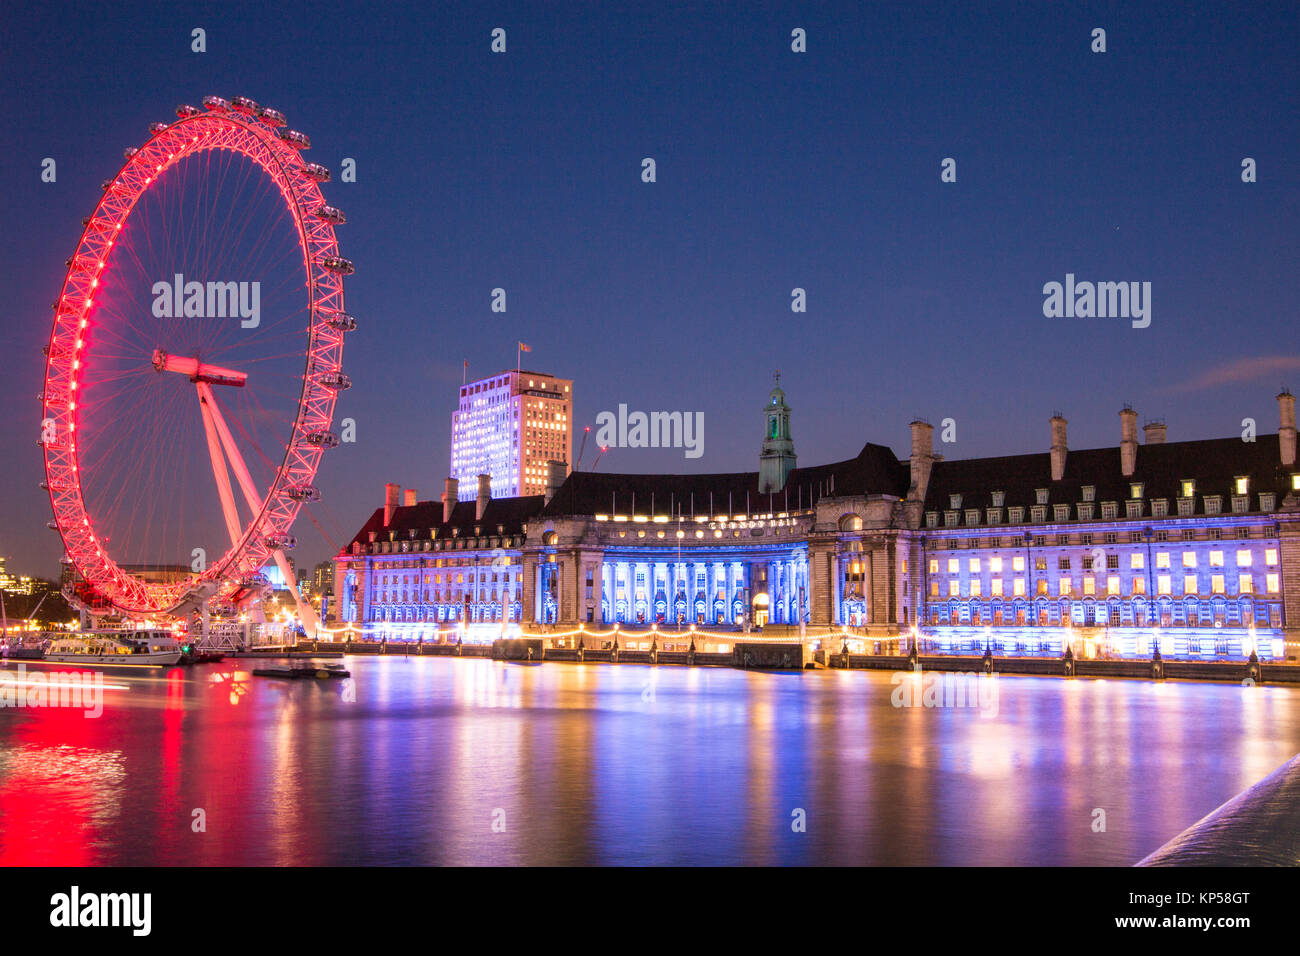 Famous London Landmark, the London Eye and London Aquarium, illuminated at night - Stock Image